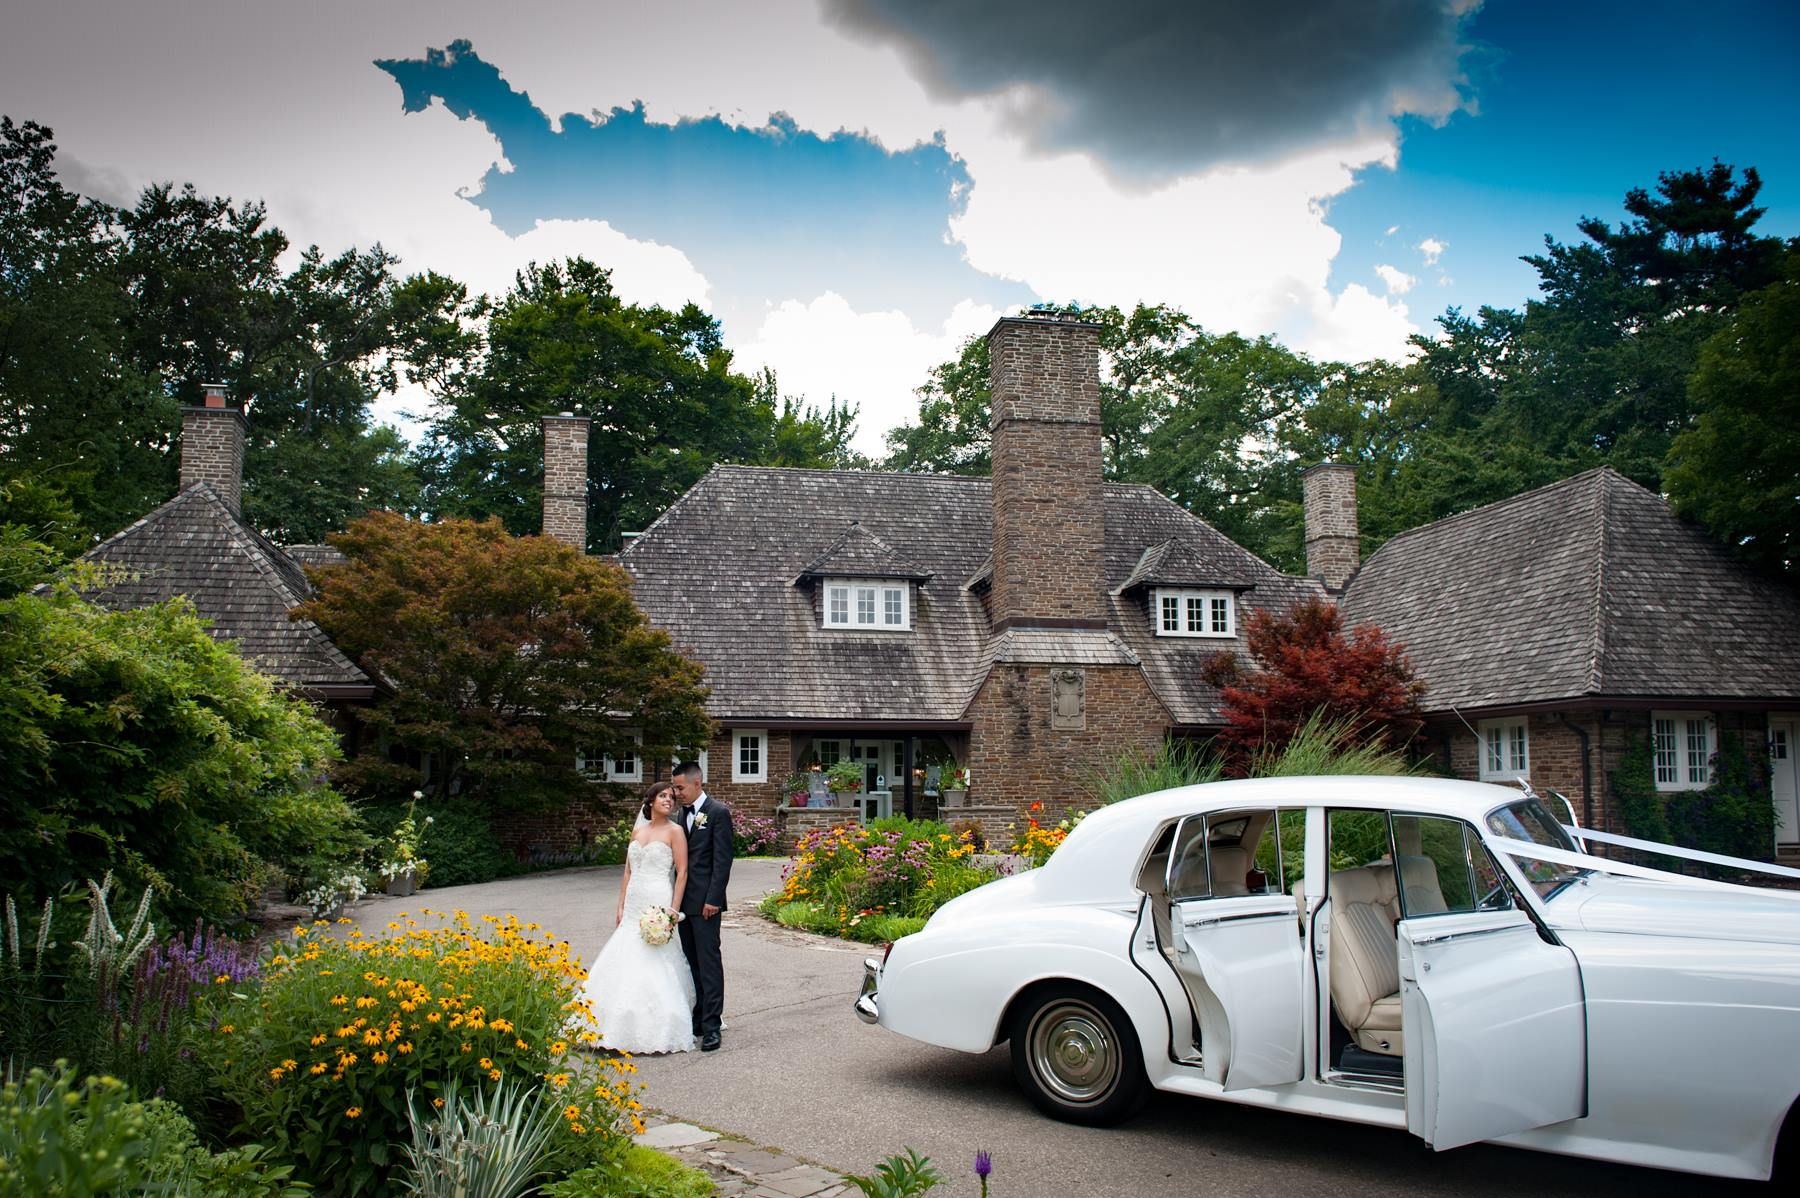 Bride Groom Limo and Mansion